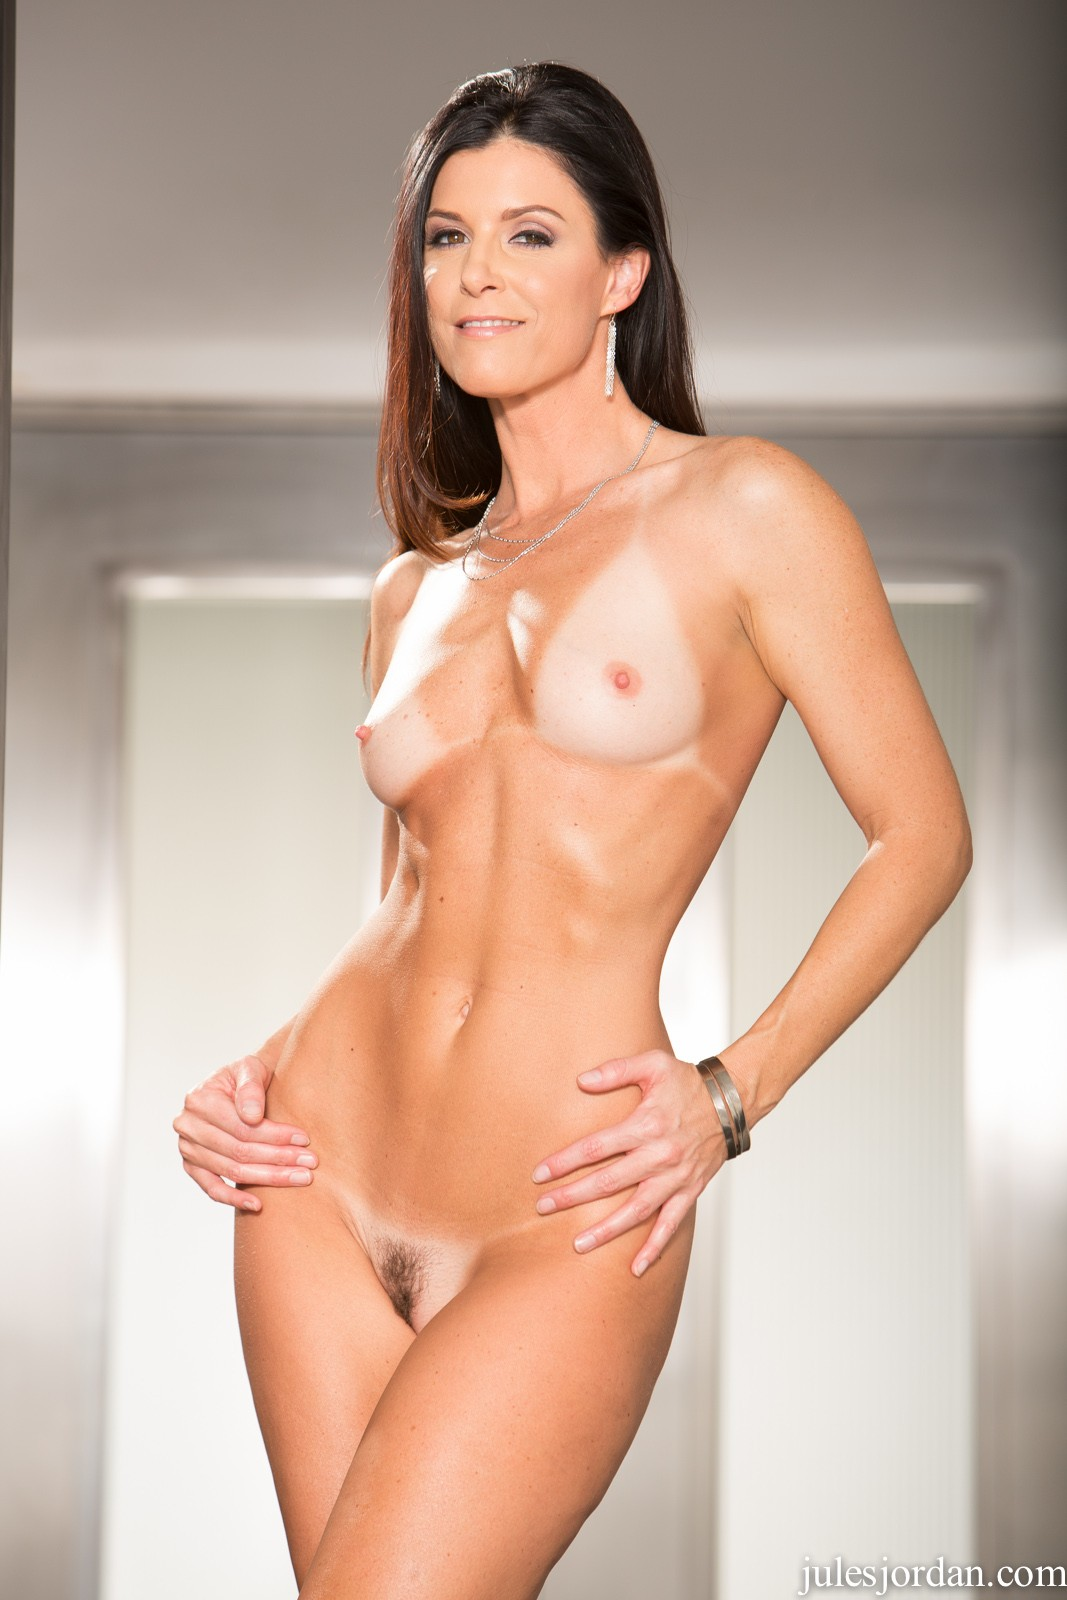 India Summer Handymen Needed For DP Featuring India Summer